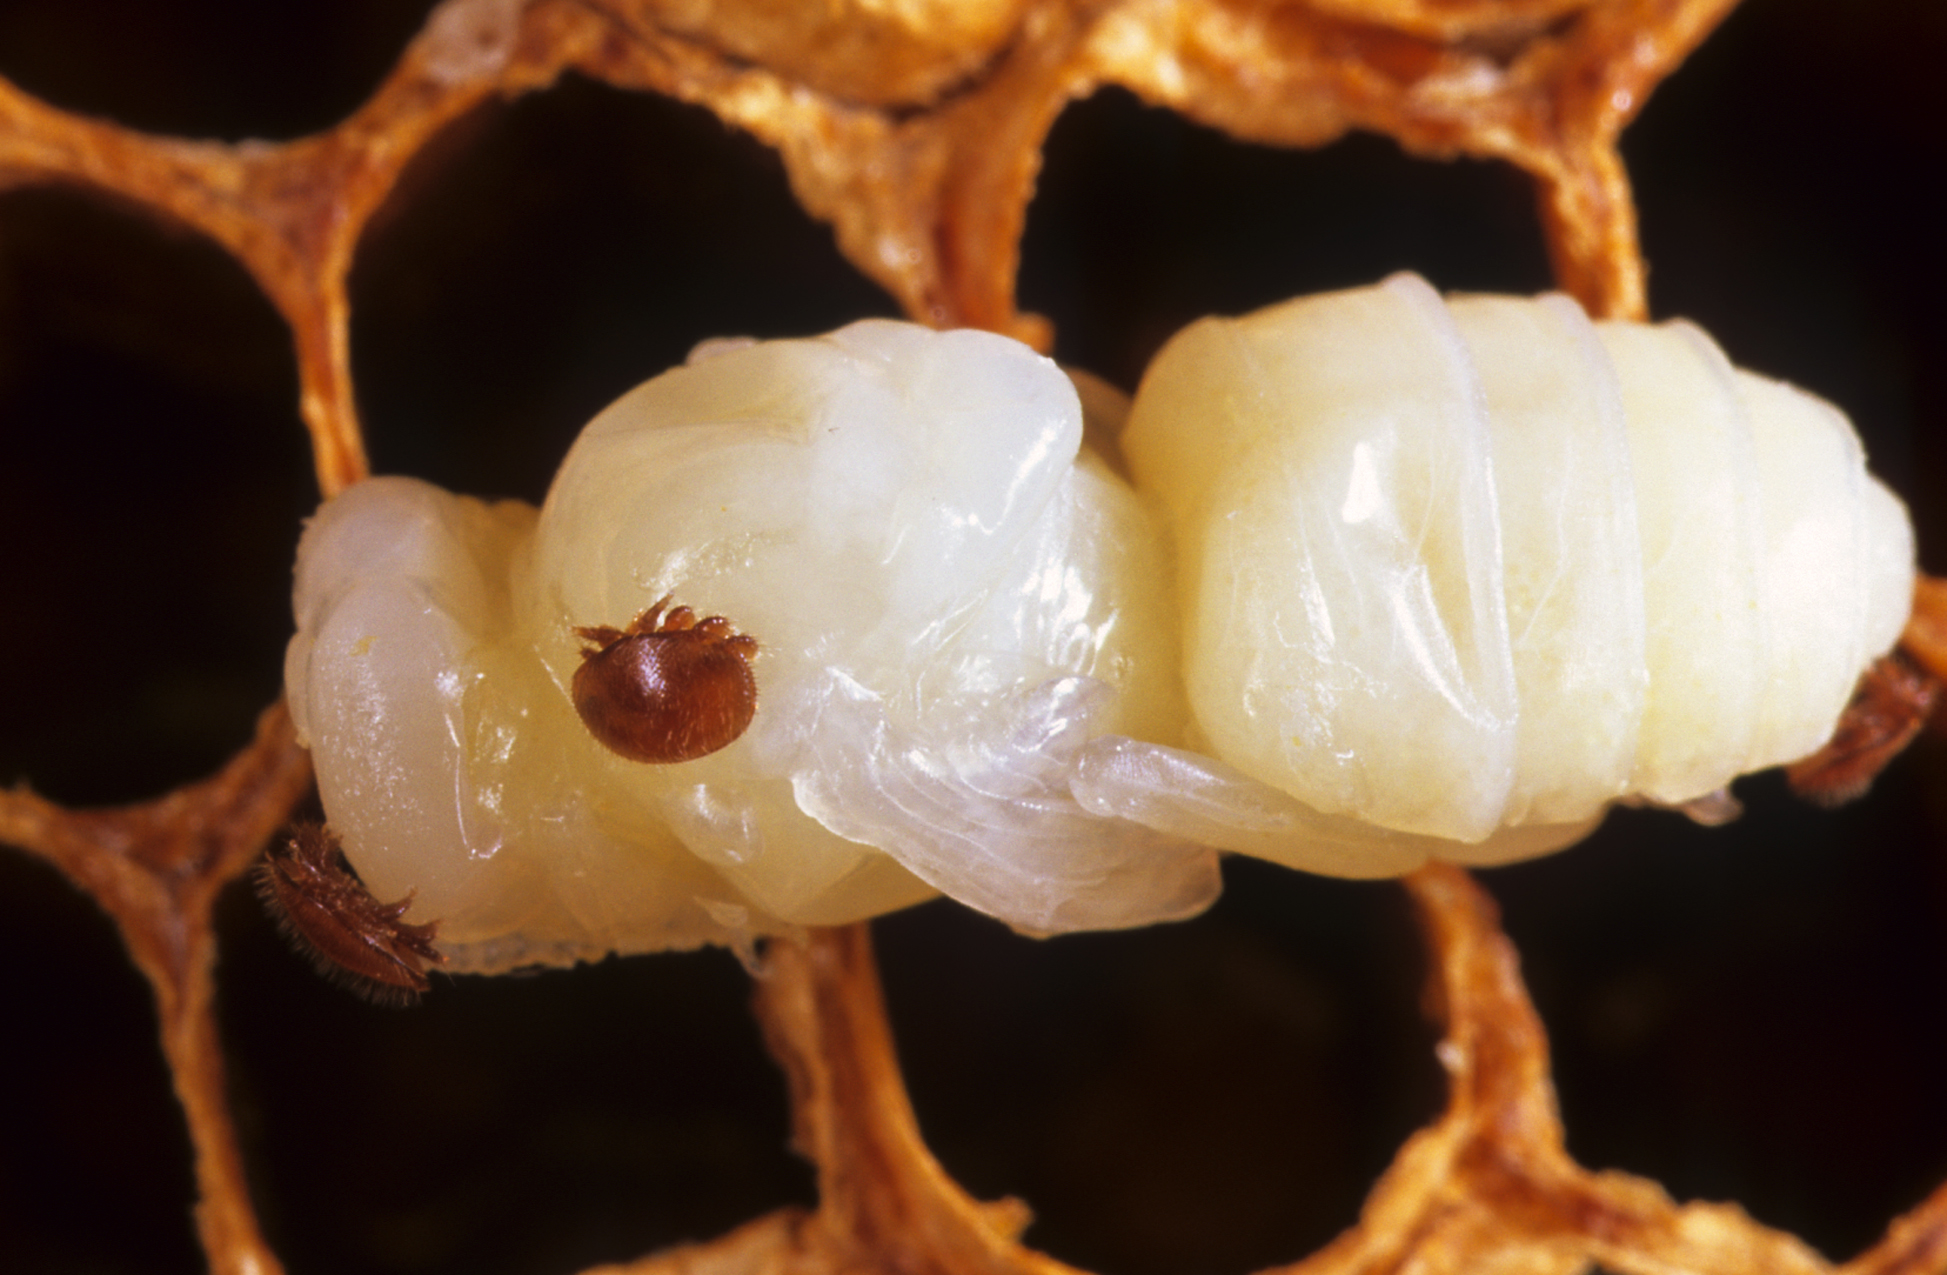 Bee pupae infected with Varroa mite